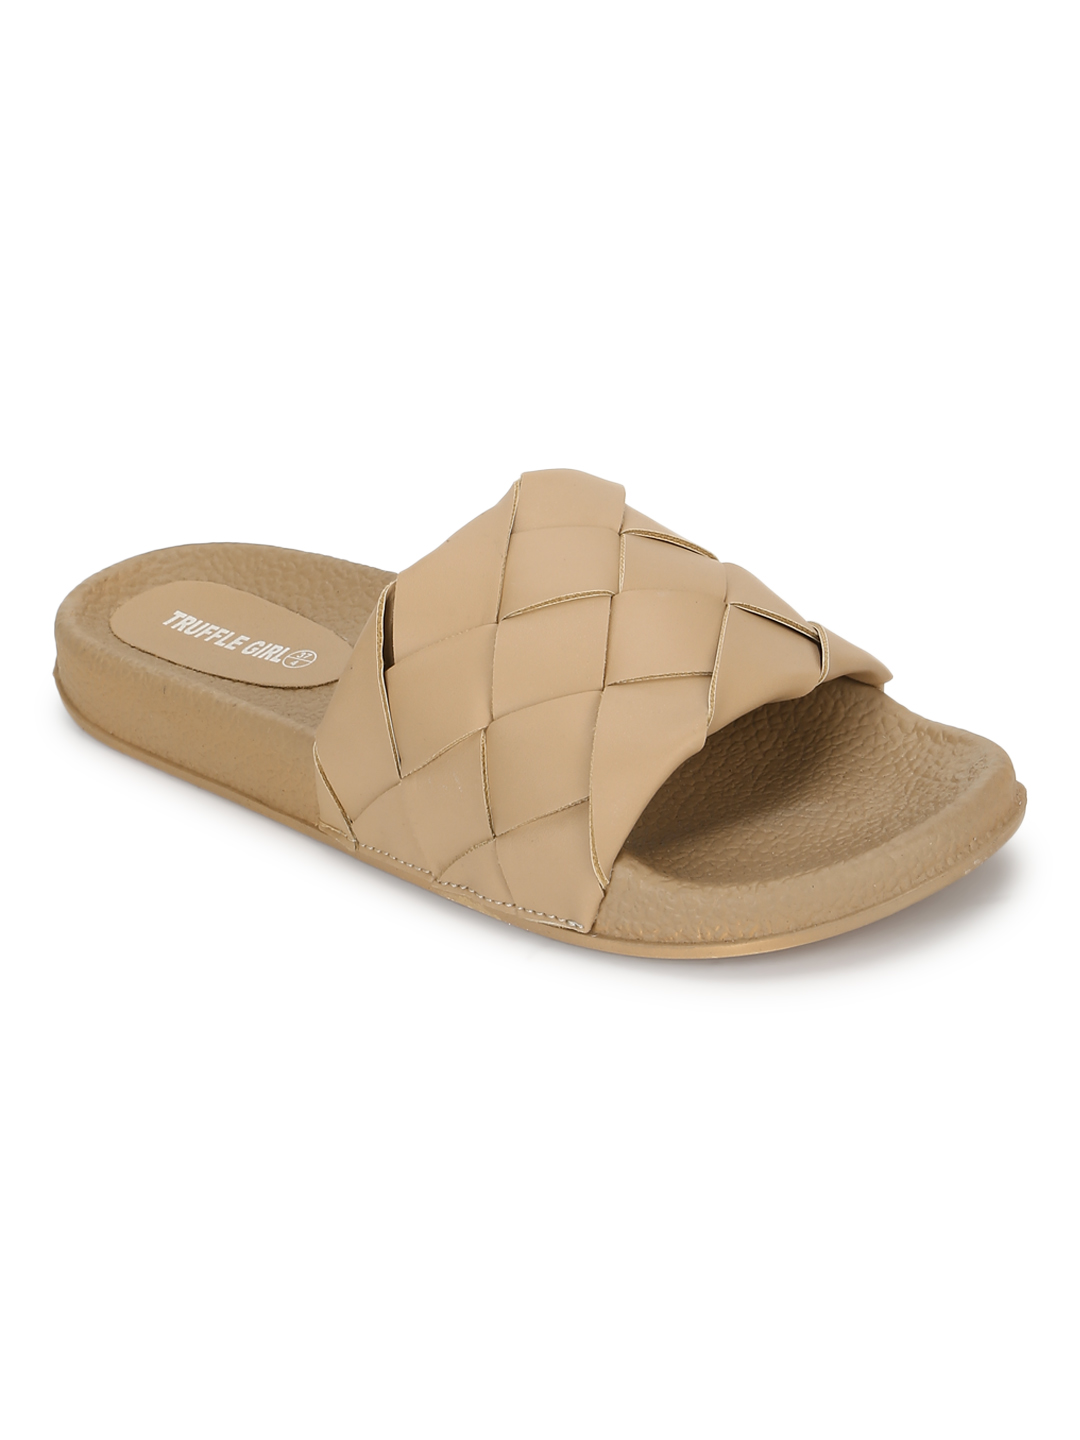 Truffle Collection | Truffle Collection Nude PU Weaved Slides